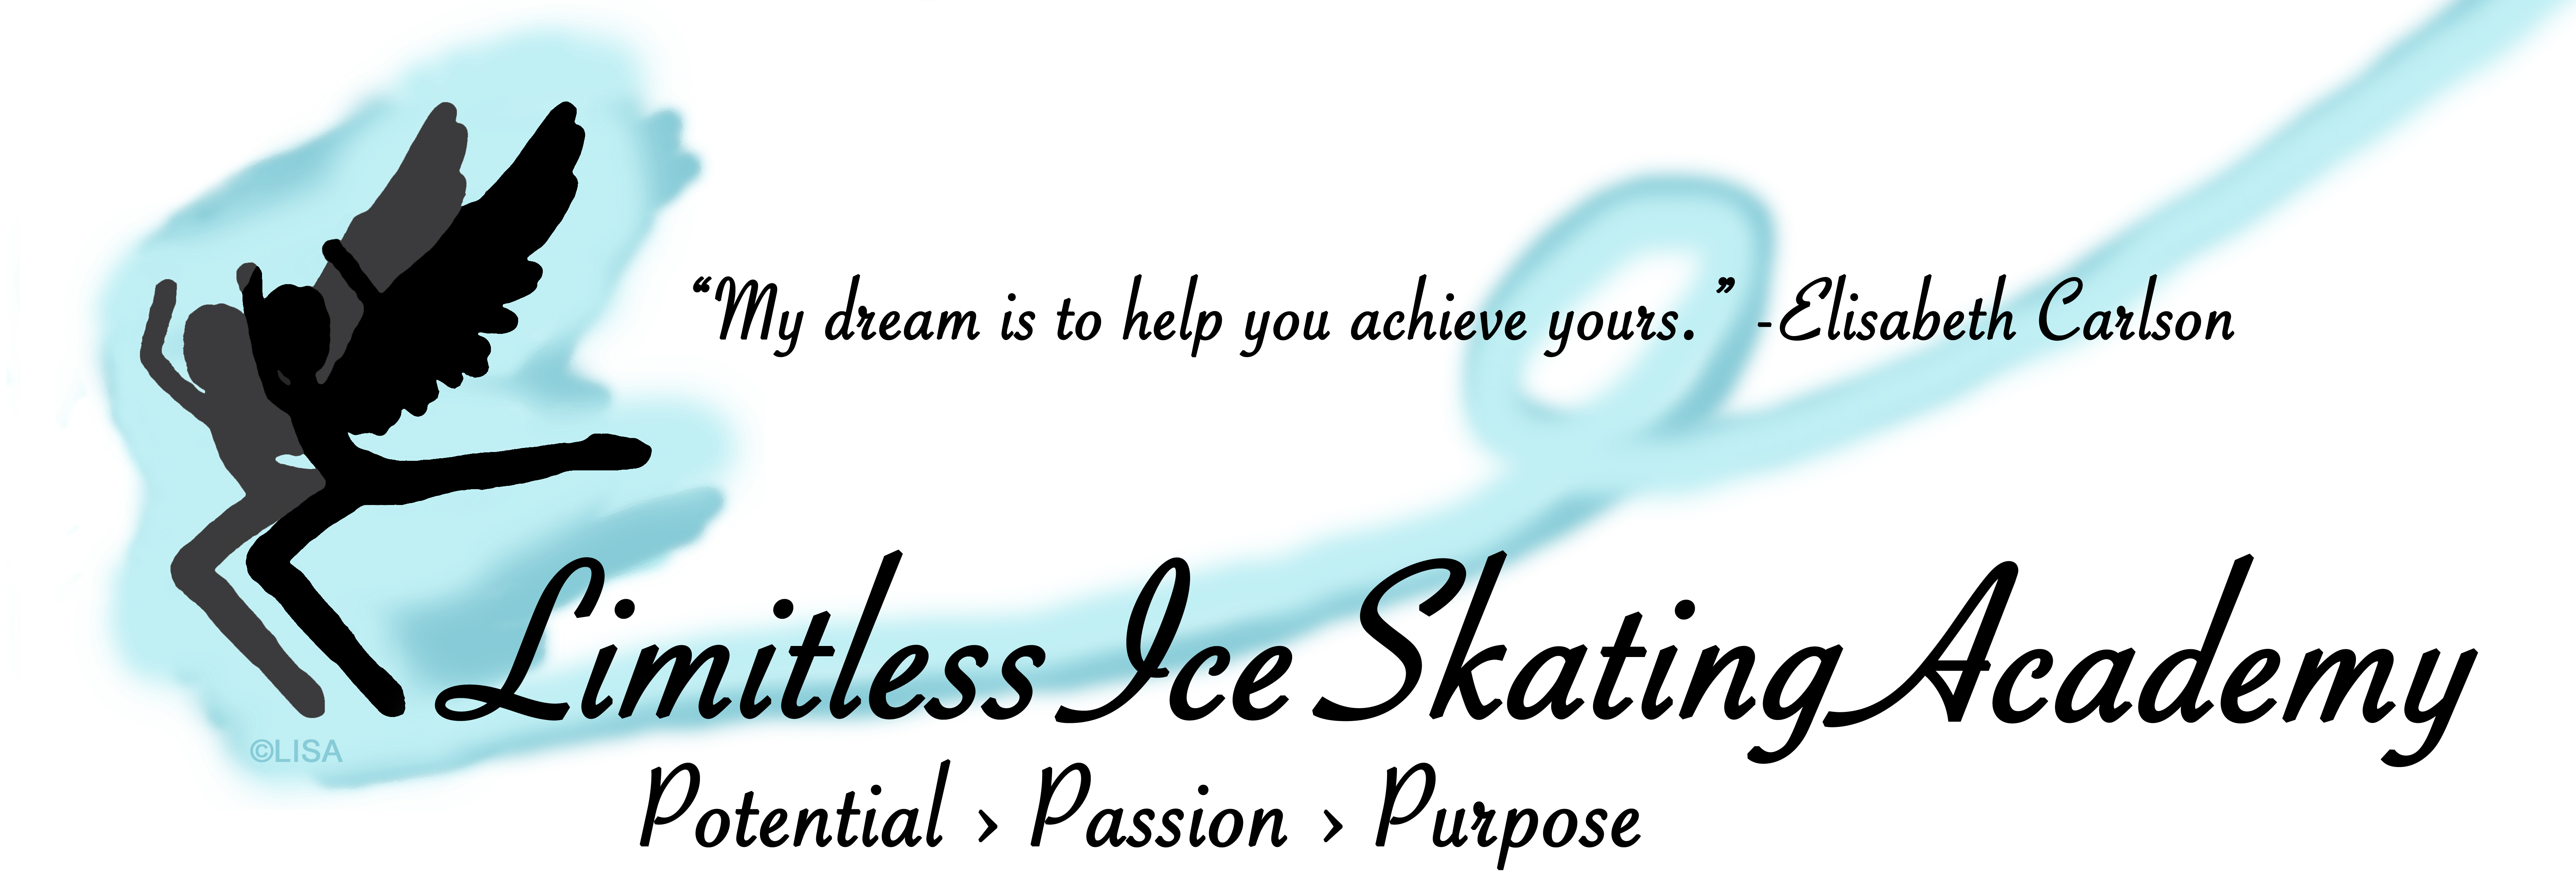 Limitless Ice Skating Academy